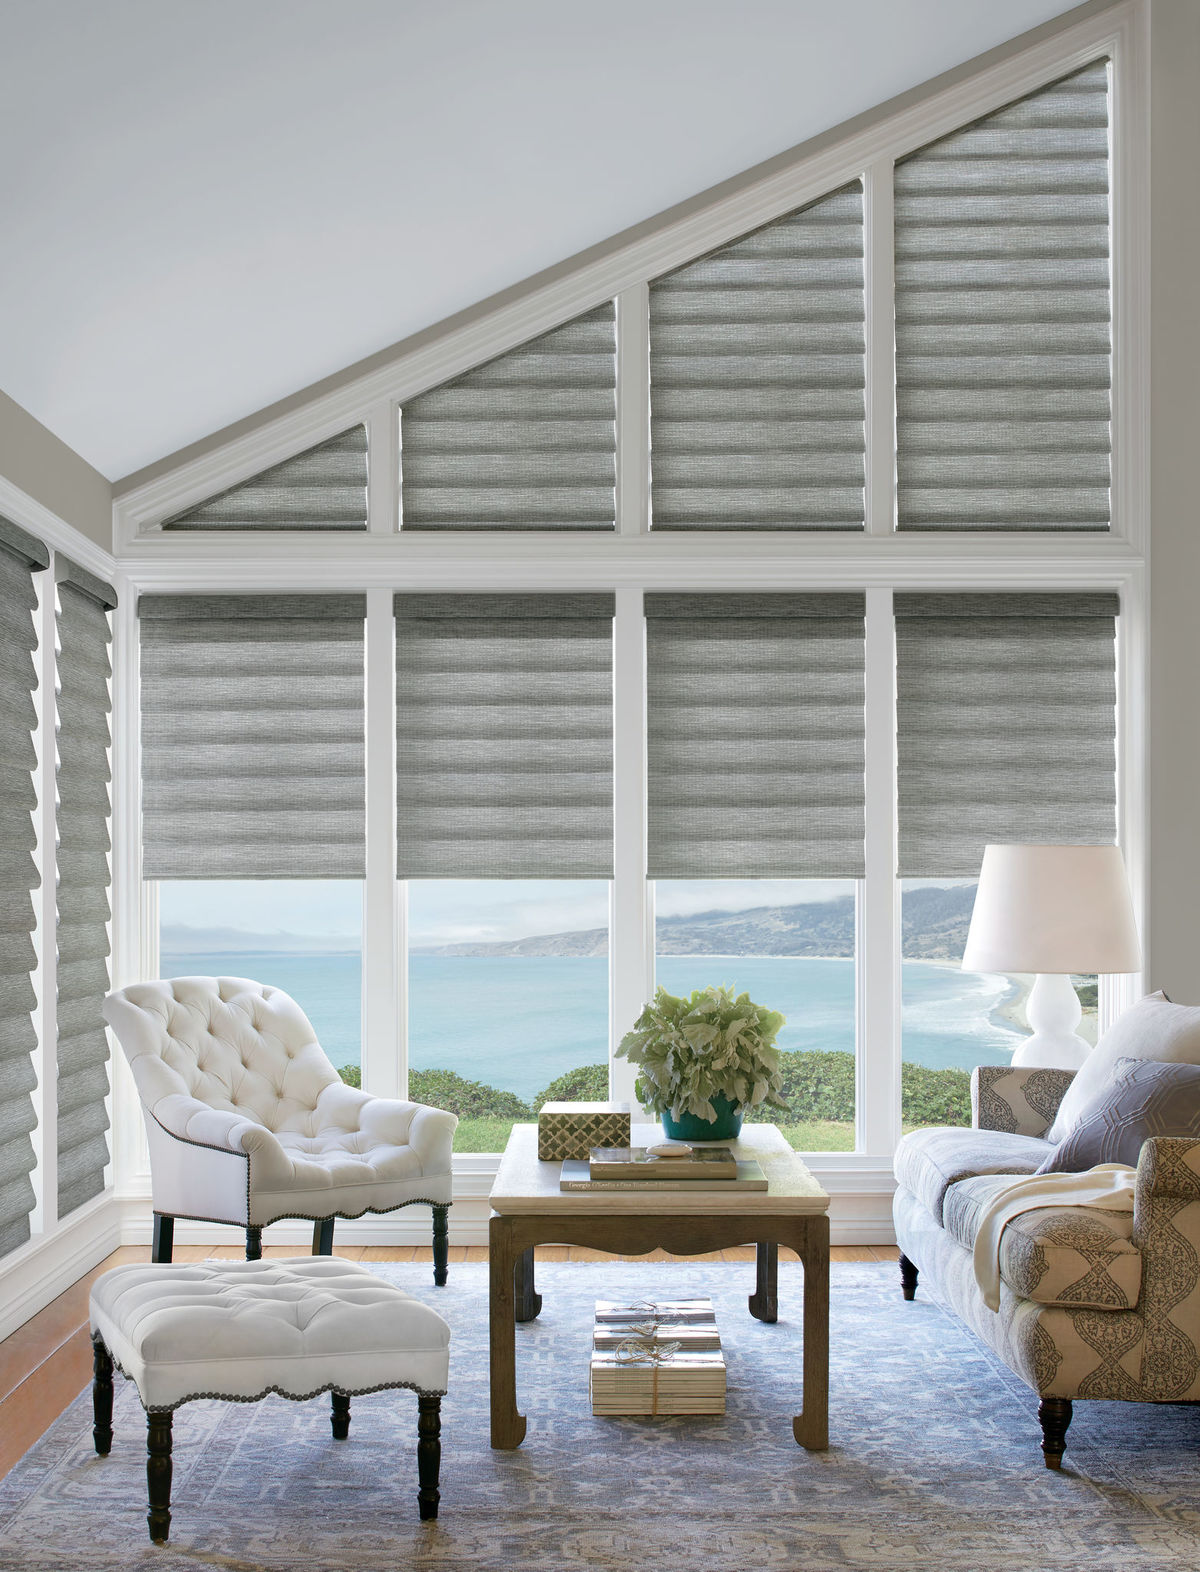 Choose Vignette Modern Roman Shades To Add Elegance To A Room